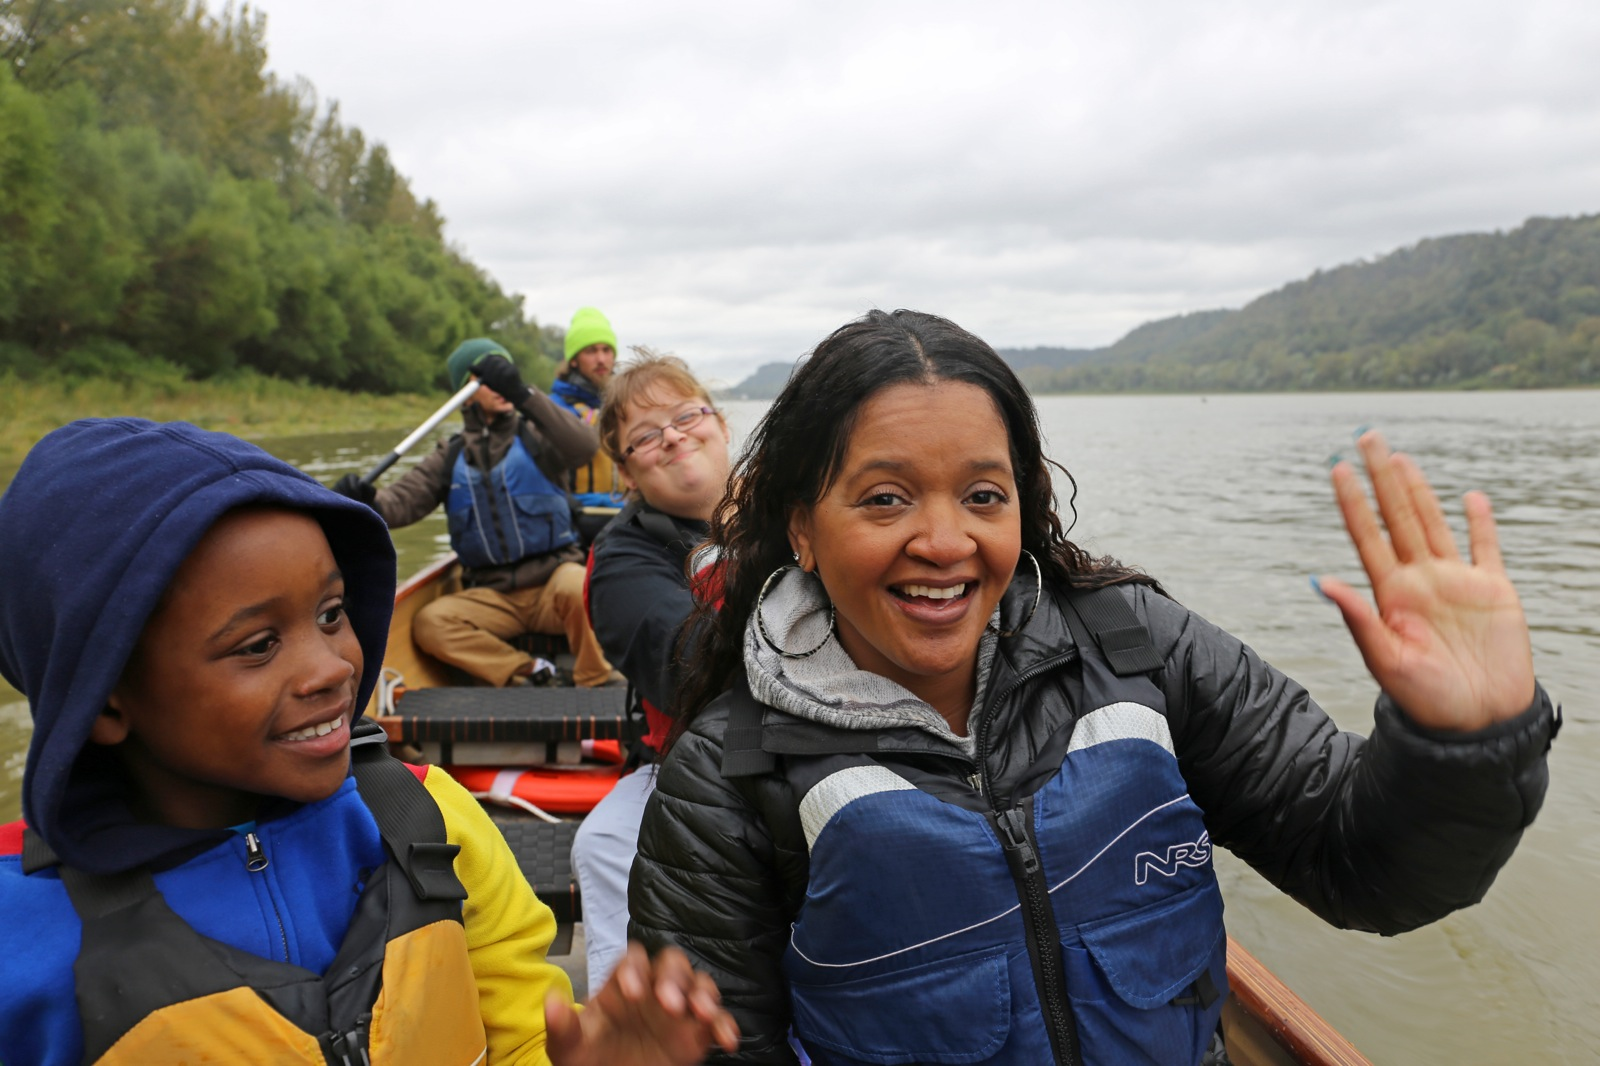 3 participants wave to the camera while in a canoe as they paddle along a wide river on a cloudy day